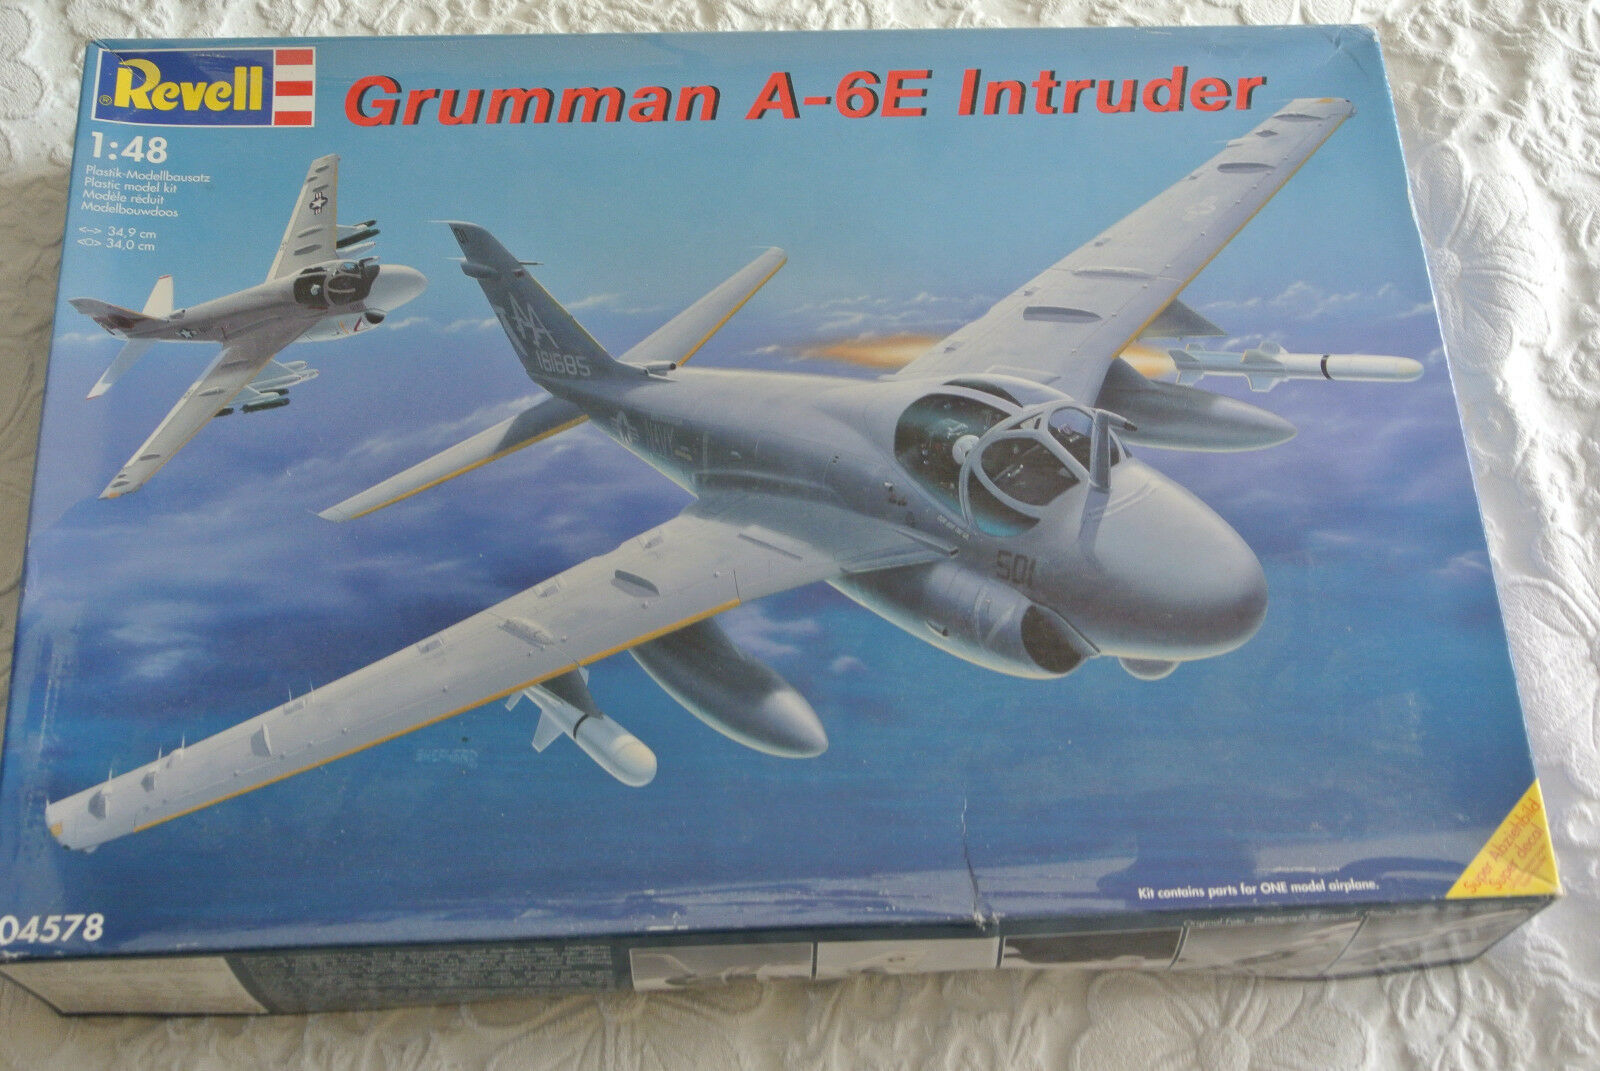 REVELL 1 48 - Grumman A-6E INTRUDER model kit